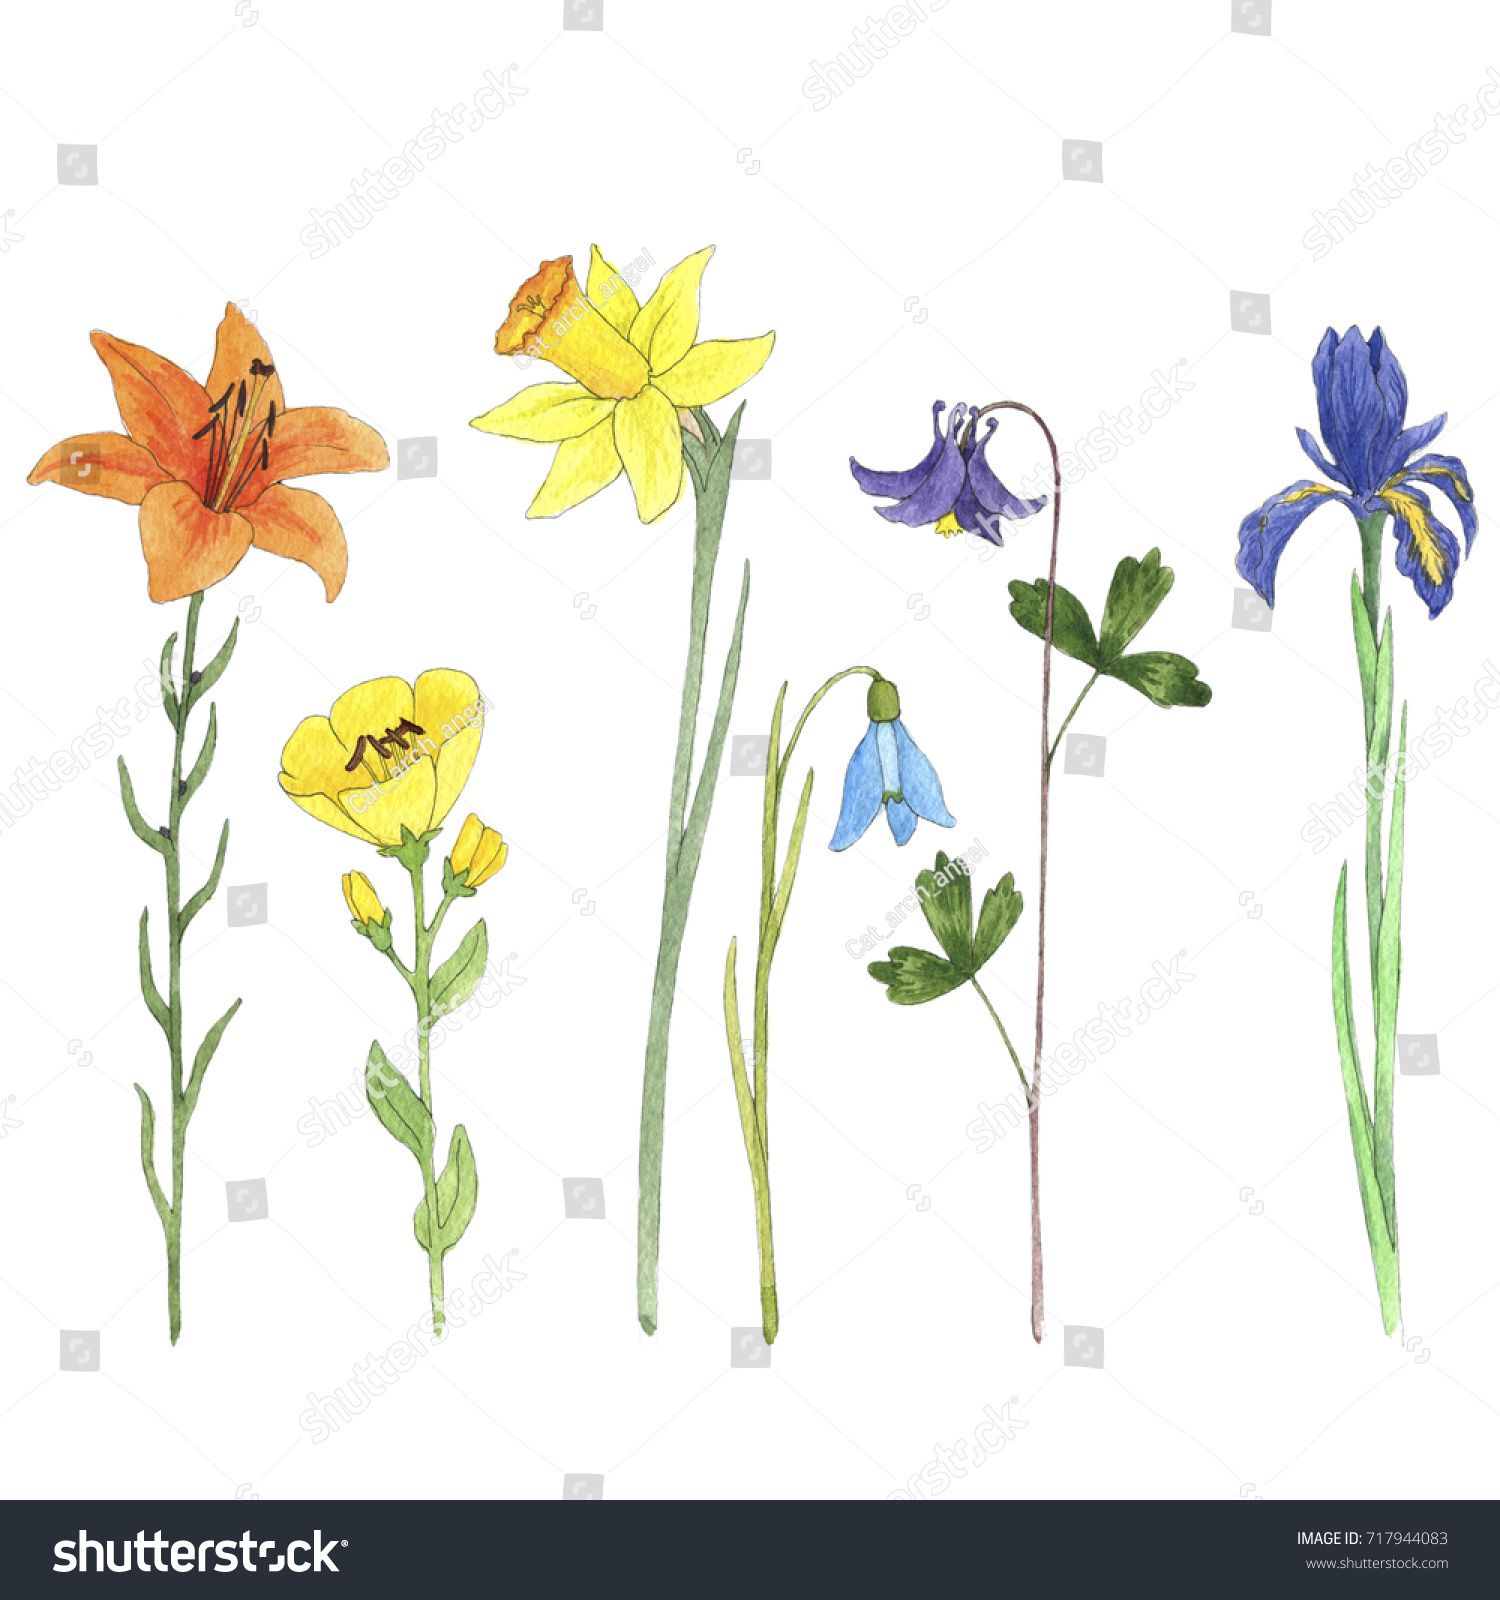 Set Watercolor Drawing Flowers Lily Iris Stock Illustration